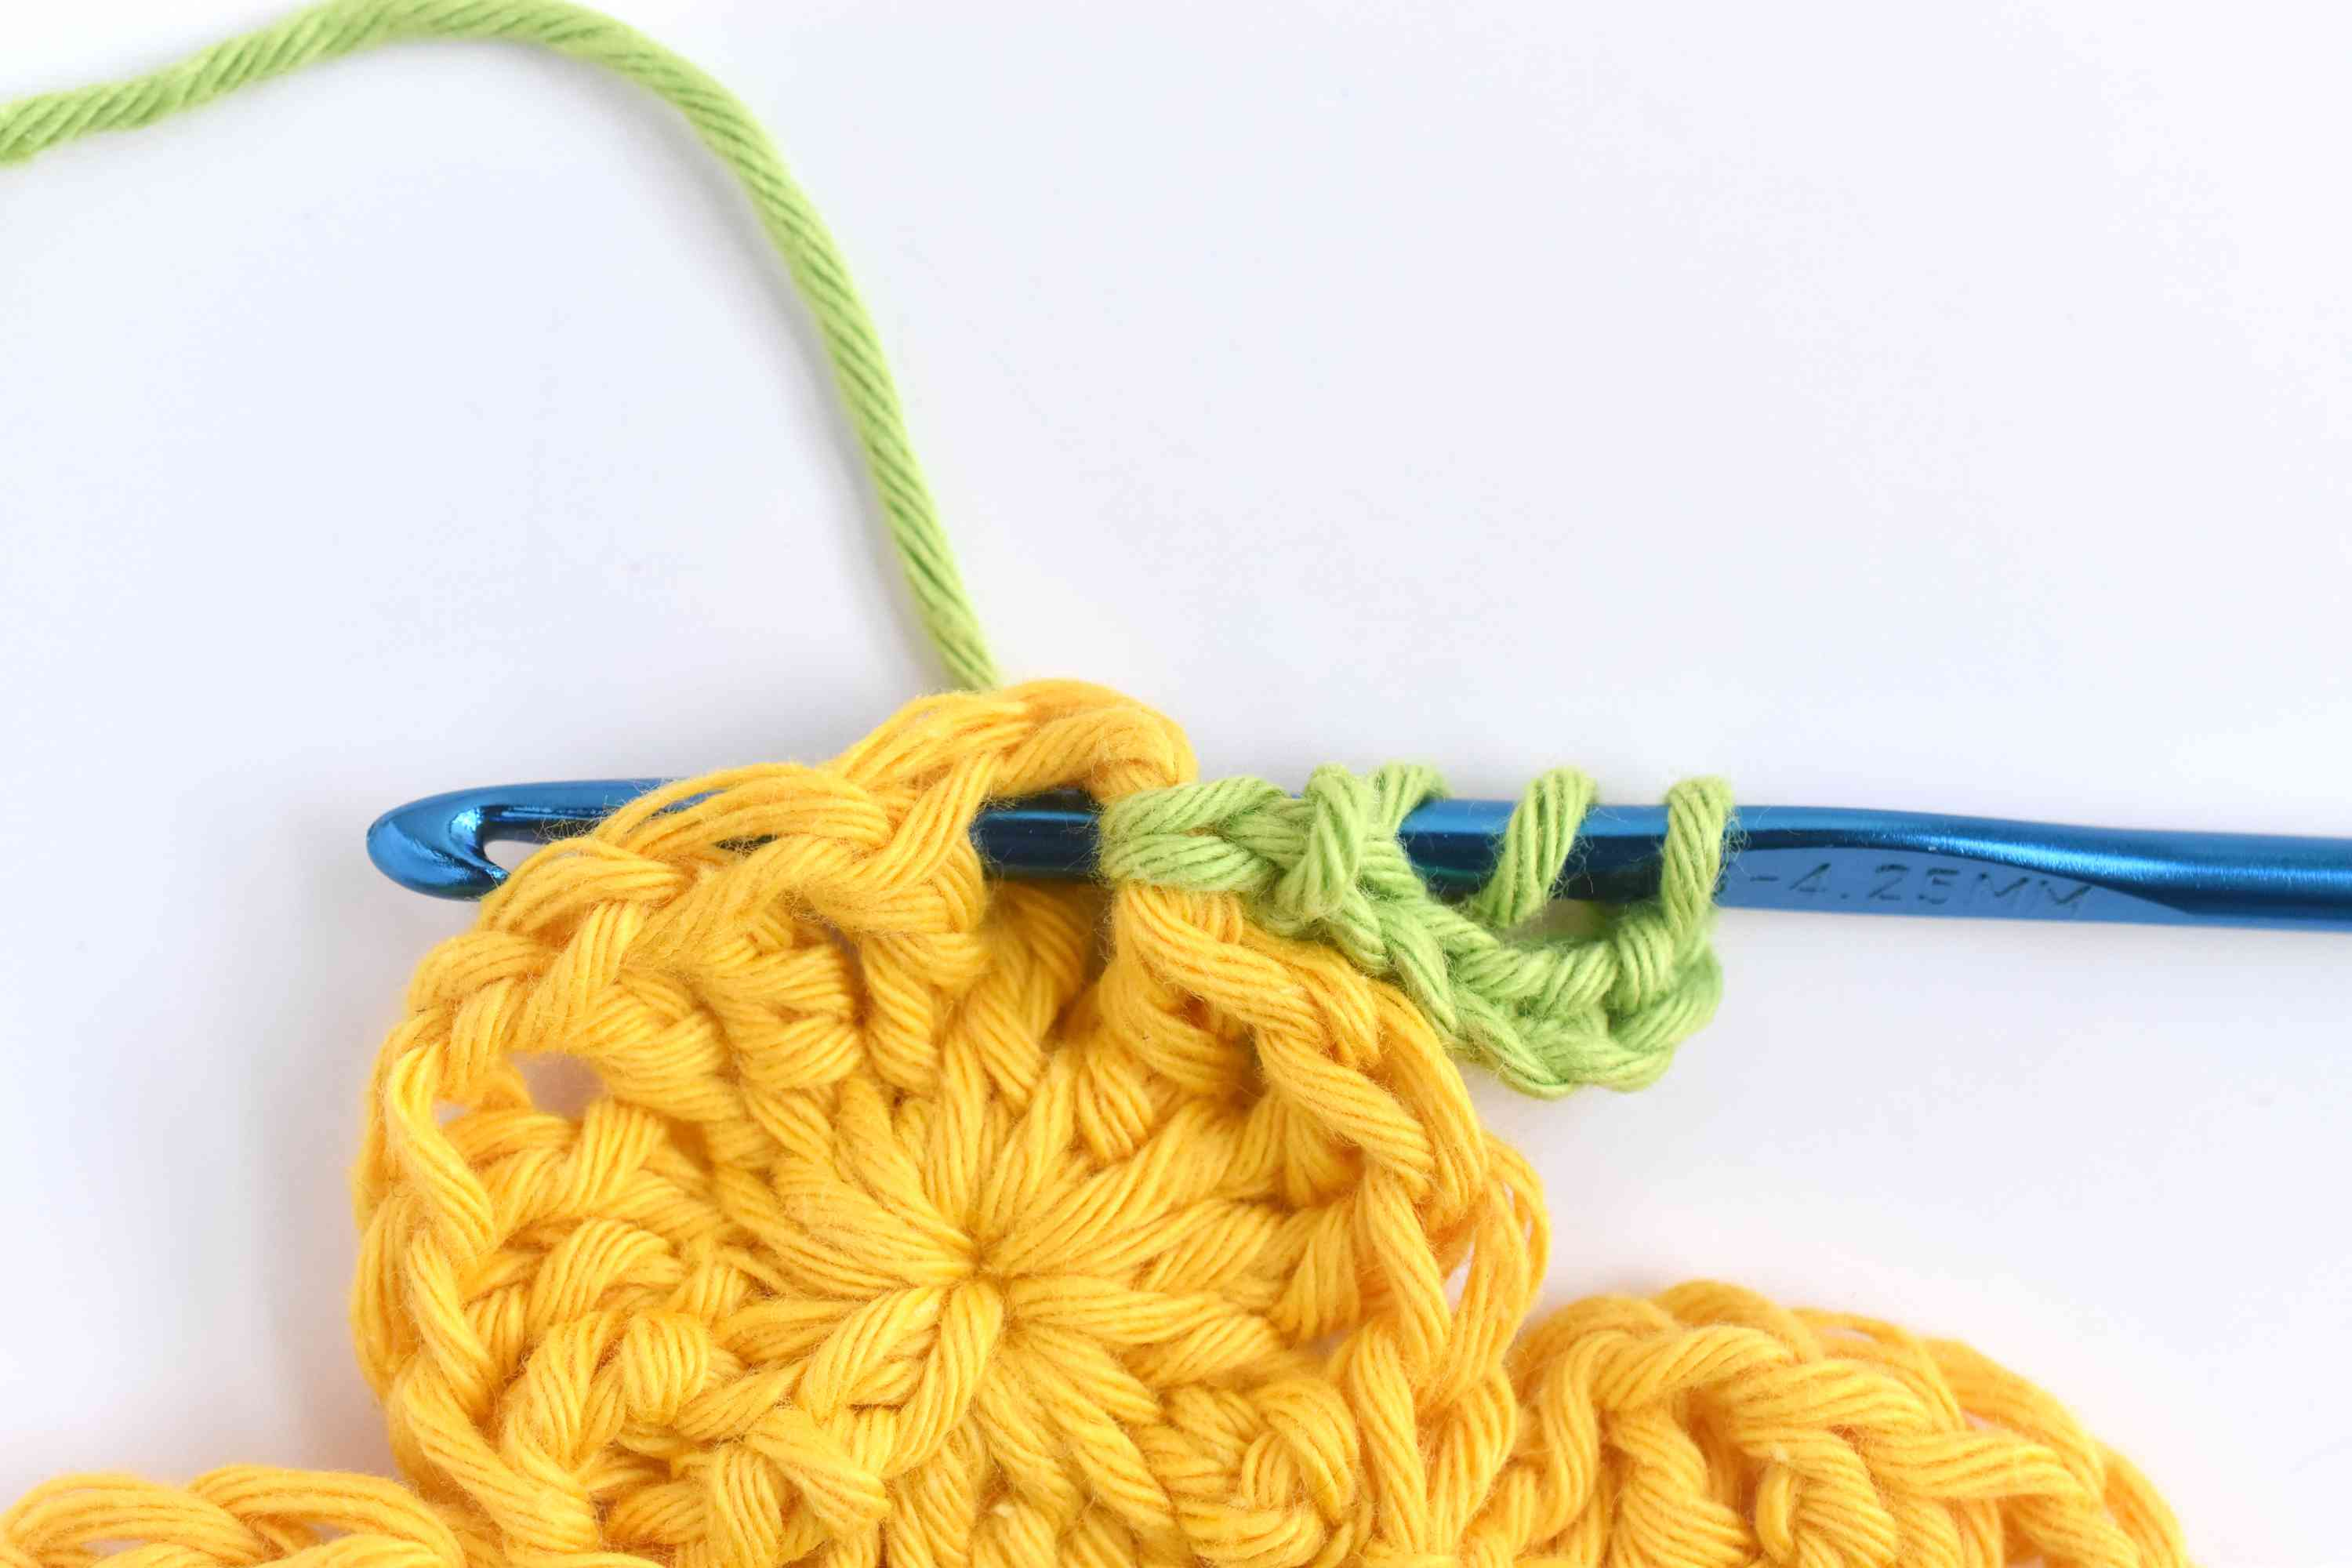 Yarn Over Two Times and Insert the Hook With the Post to the Back